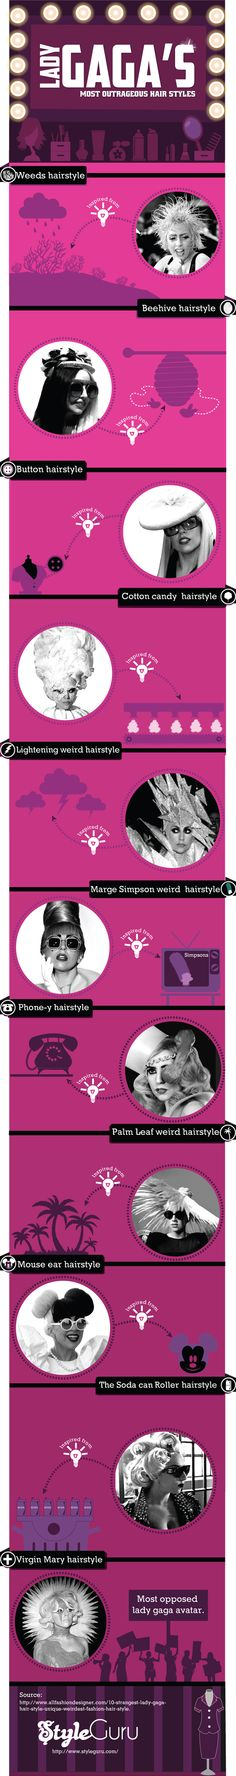 Lady Gaga's outrageous hairstyles [Infographic]